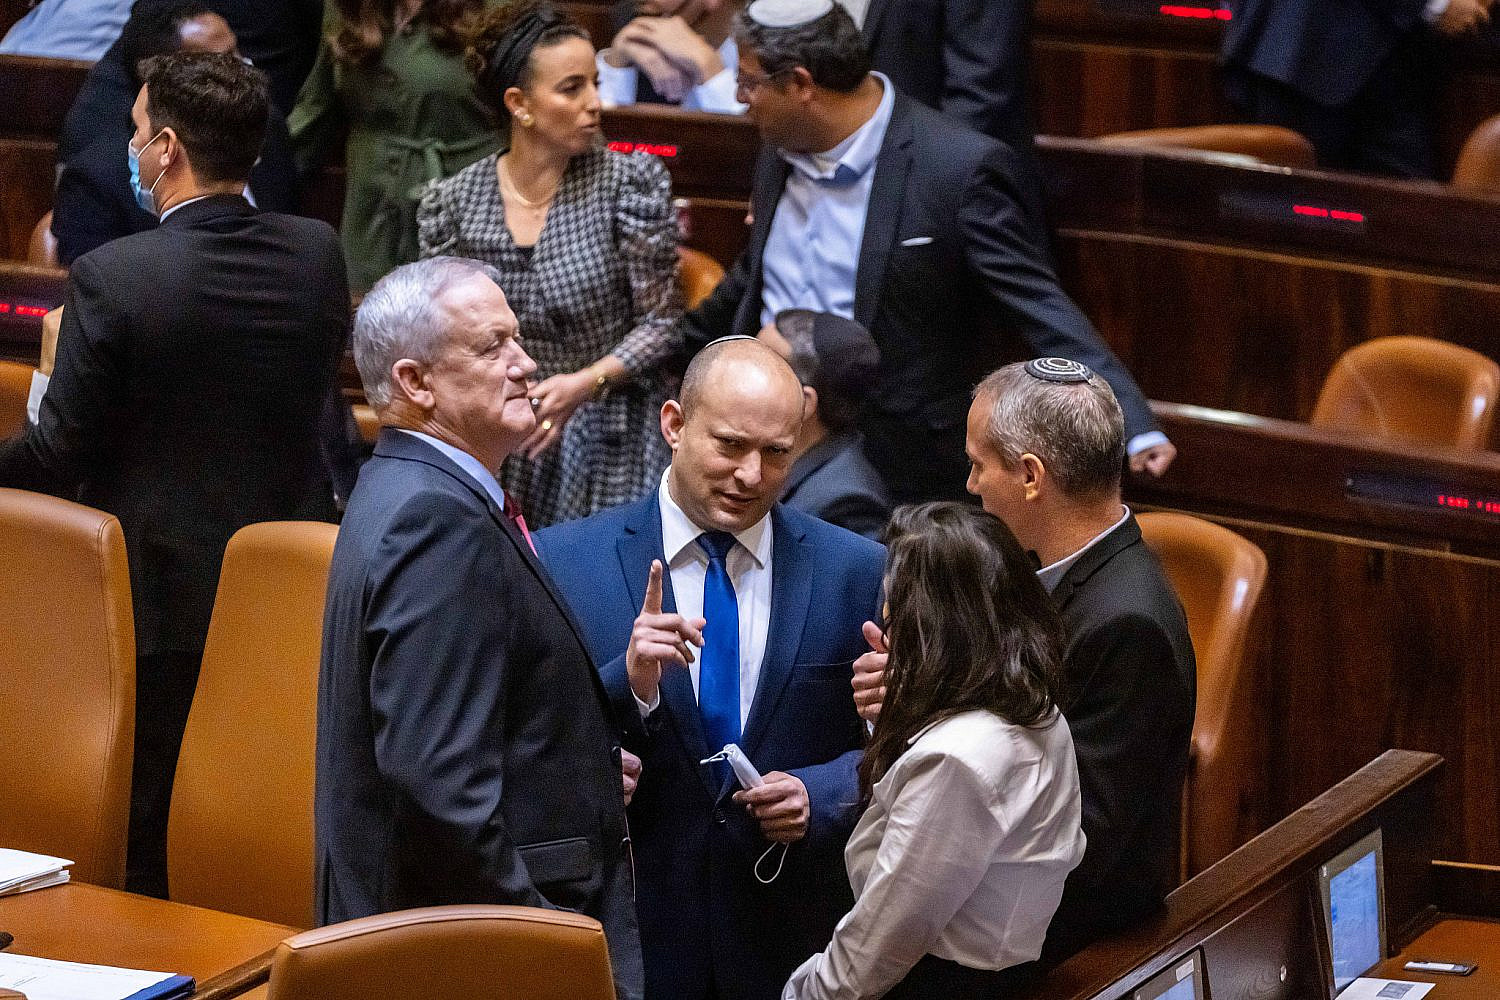 Head of the Yamina party Naftali Bennett, head of the Blue and White party Benny Gantz, Ayelet Shaked and Hilik Tropper seen in the plenum hall of the Israeli Knesset during the voting in the presidential elections, in Jerusalem, June 2, 2021. (Olivier Fitoussi/Flash90)